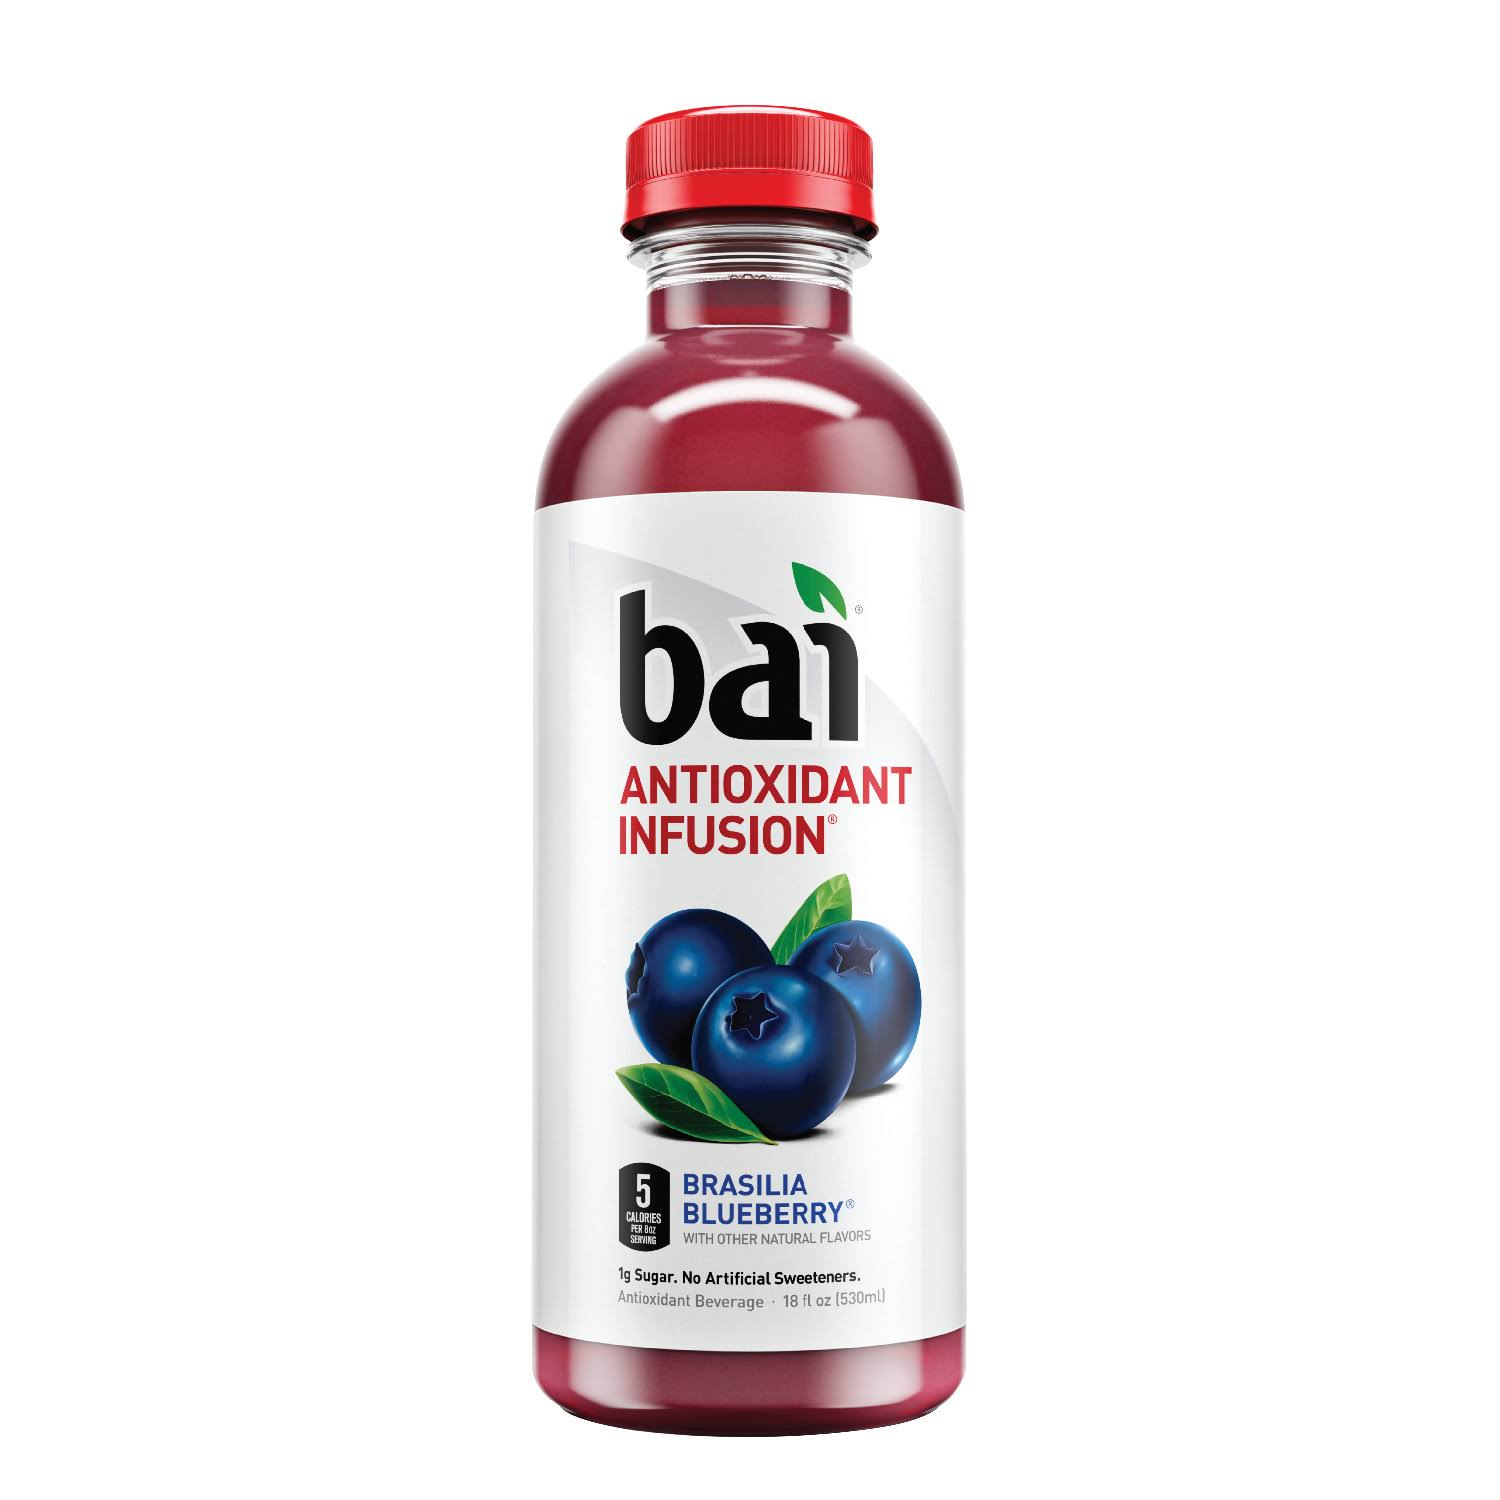 Bai Antioxidant Infusion - Brasilia Blueberry, 530ml